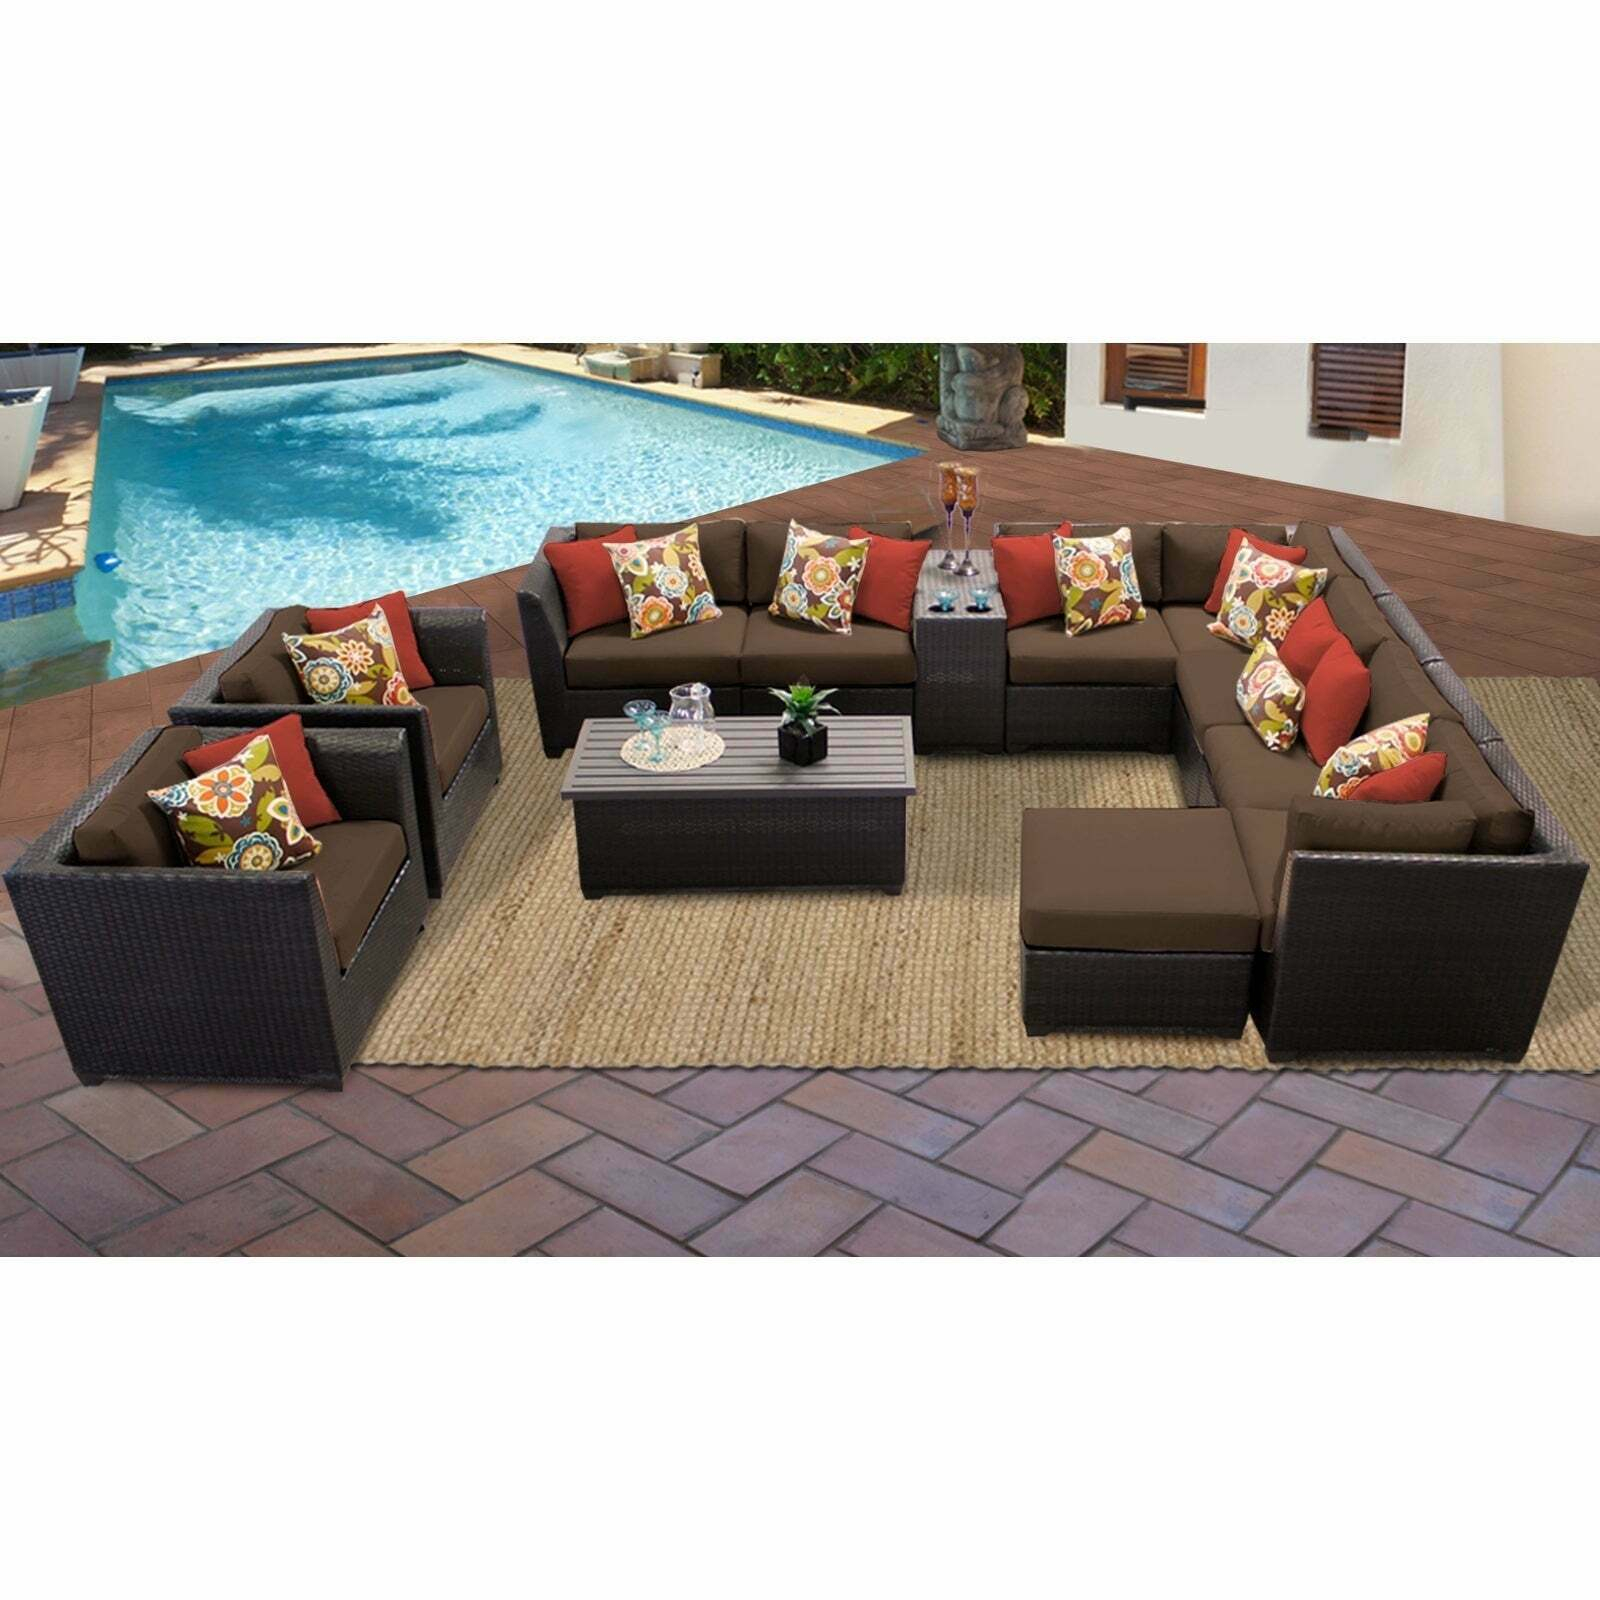 Barbados 12 Piece Outdoor Wicker Patio Furniture Set 12B Pertaining To Center Table Double Glider Benches (View 17 of 25)